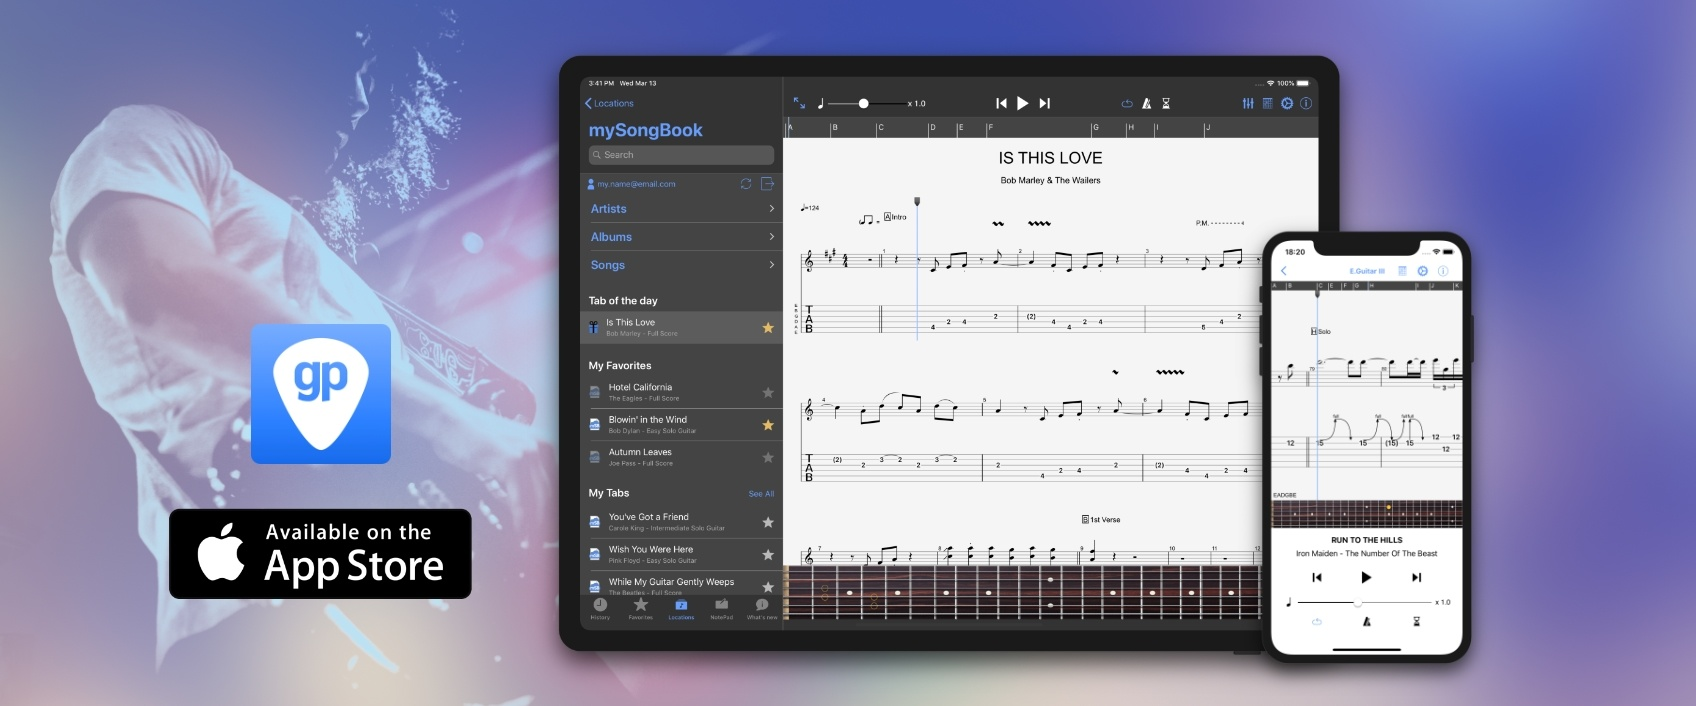 Guitar Pro – Easily Play, View, and Write Chords